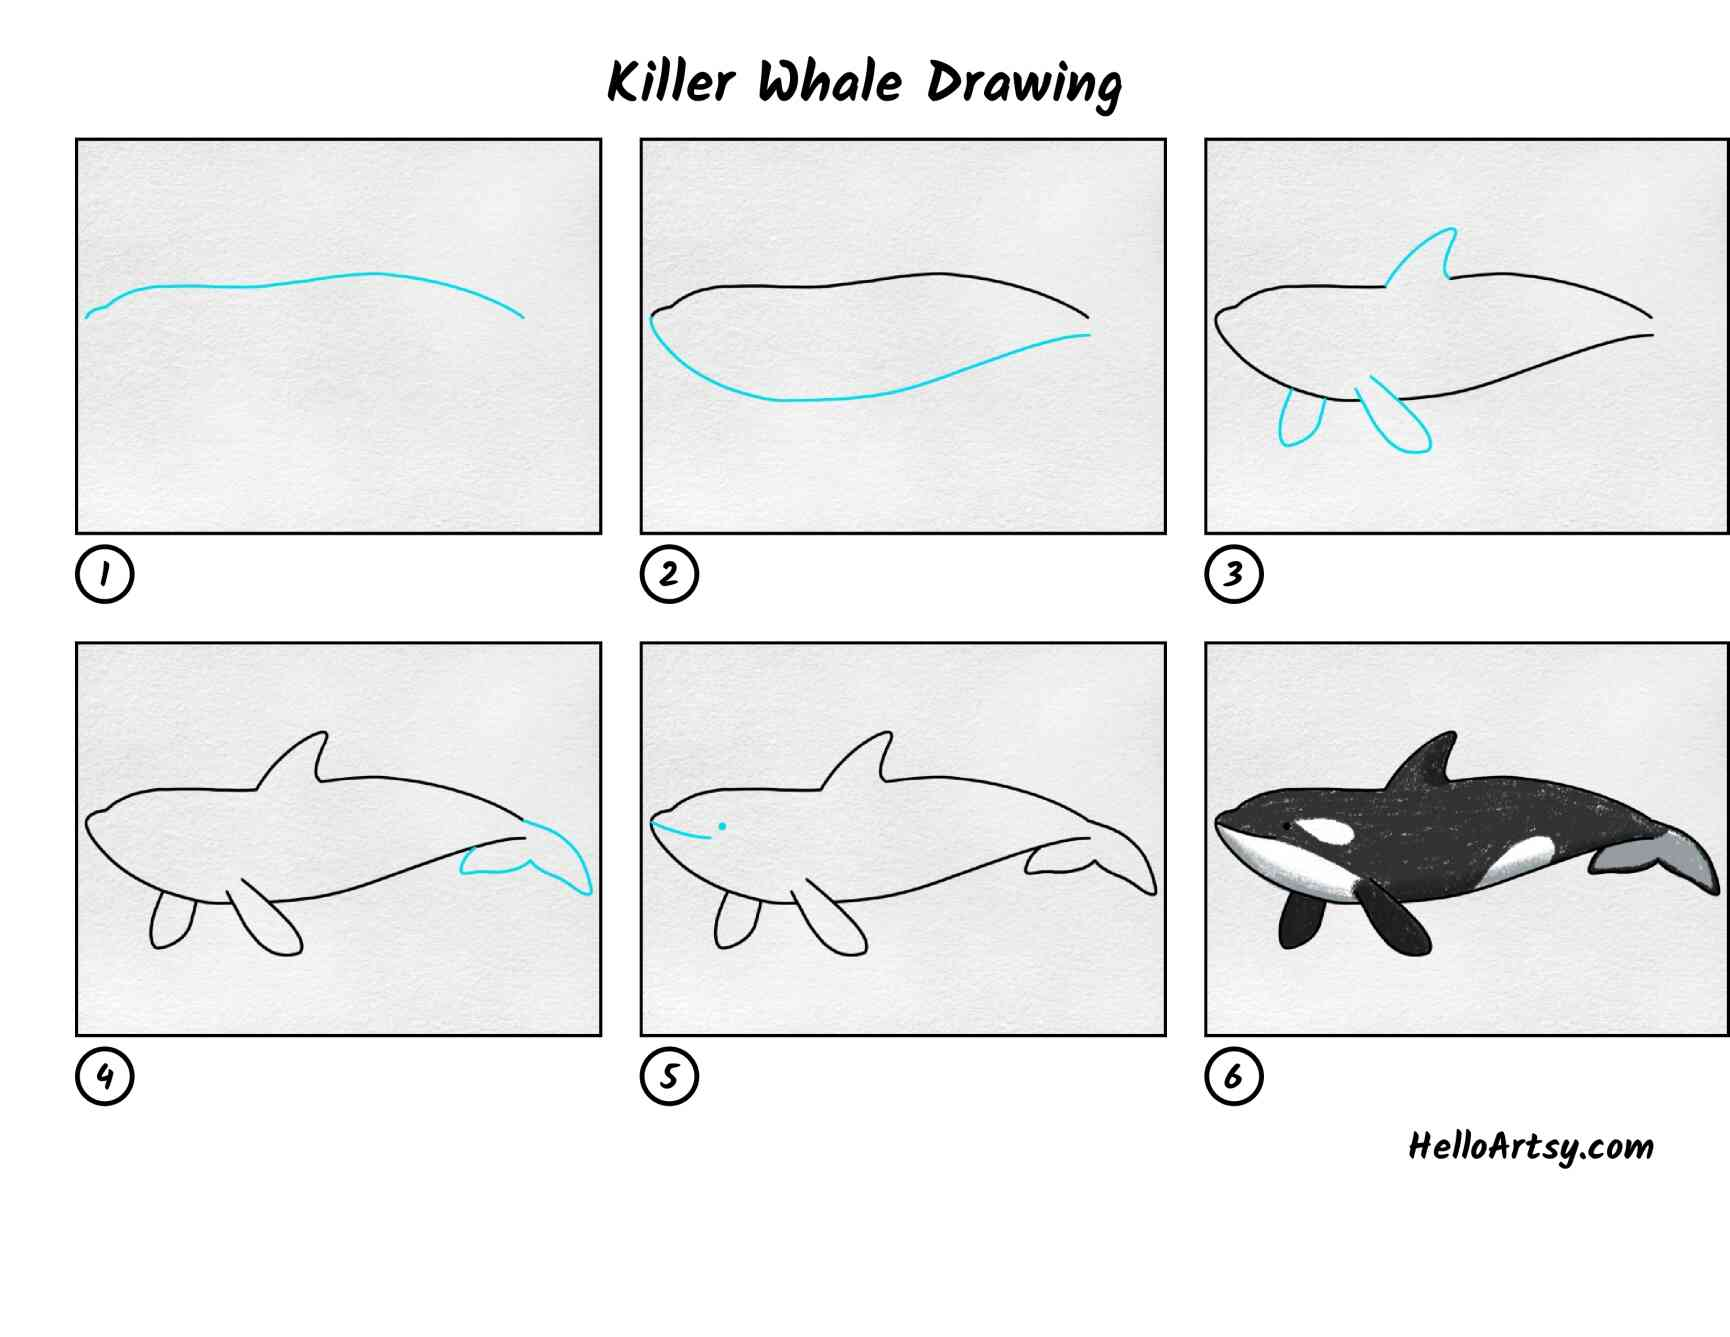 Killer Whale Drawing: All Steps